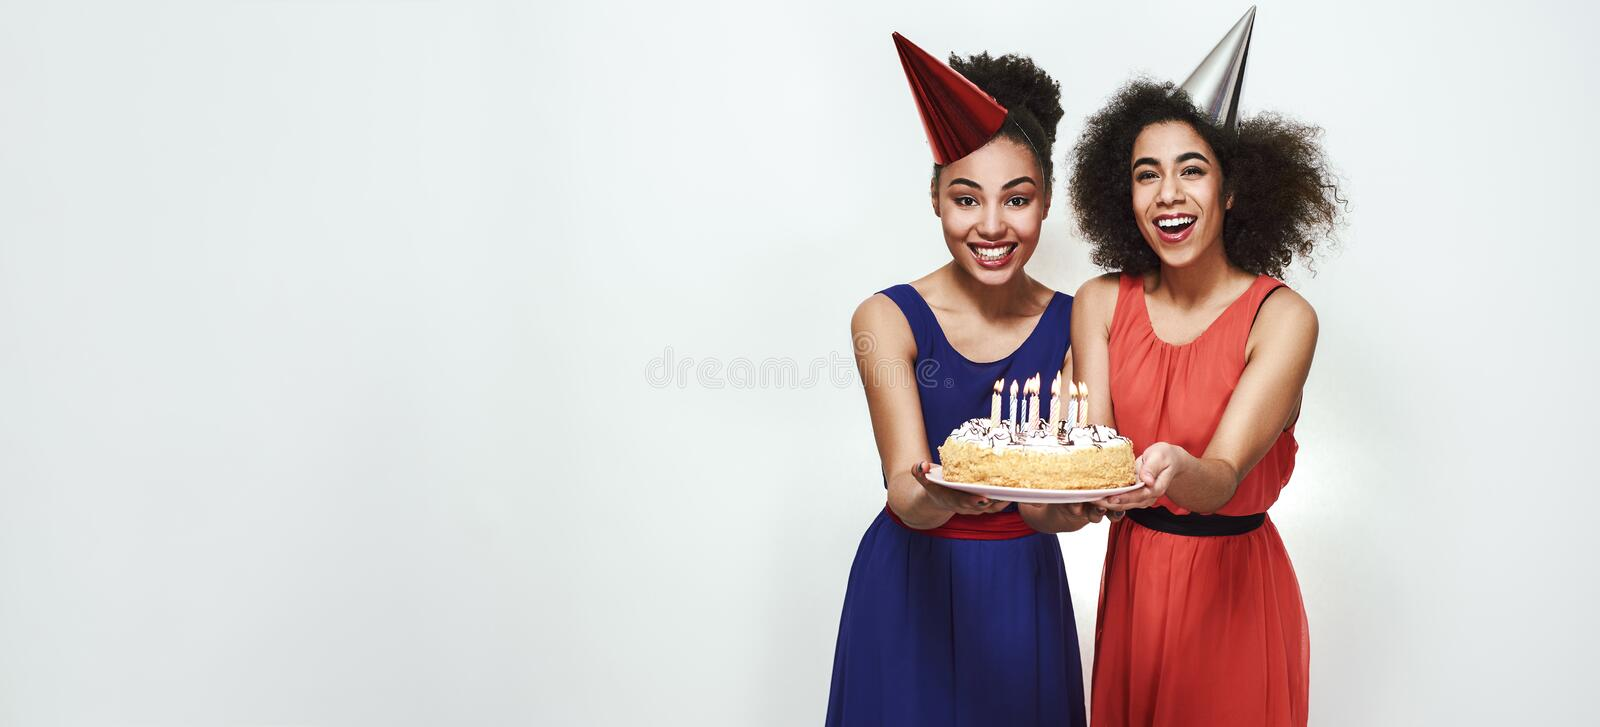 Time to make a wish! Wide photo of happy young afro american women in party hats holding a cake with candles while royalty free stock photo